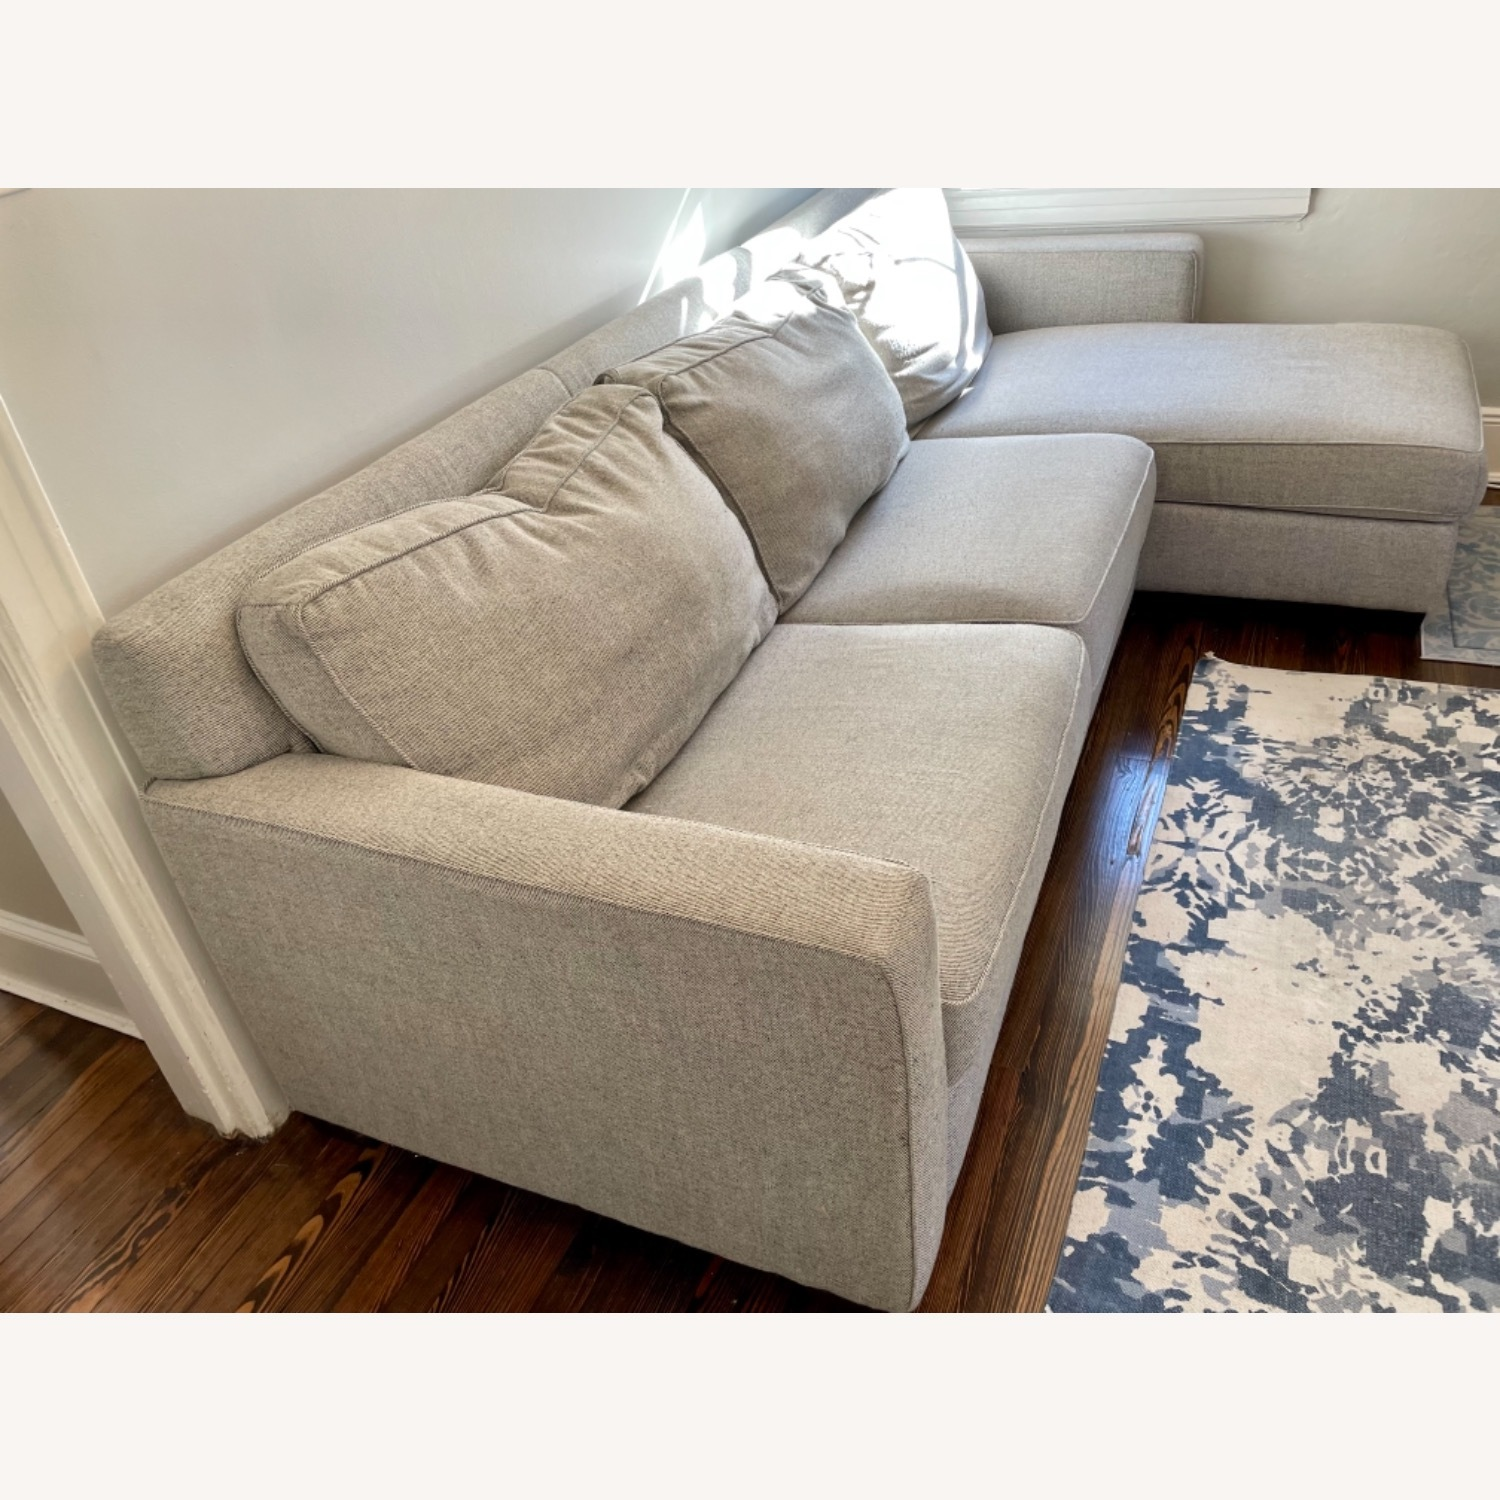 West Elm Henry Sleeper Sofa with Storage Chaise - image-6